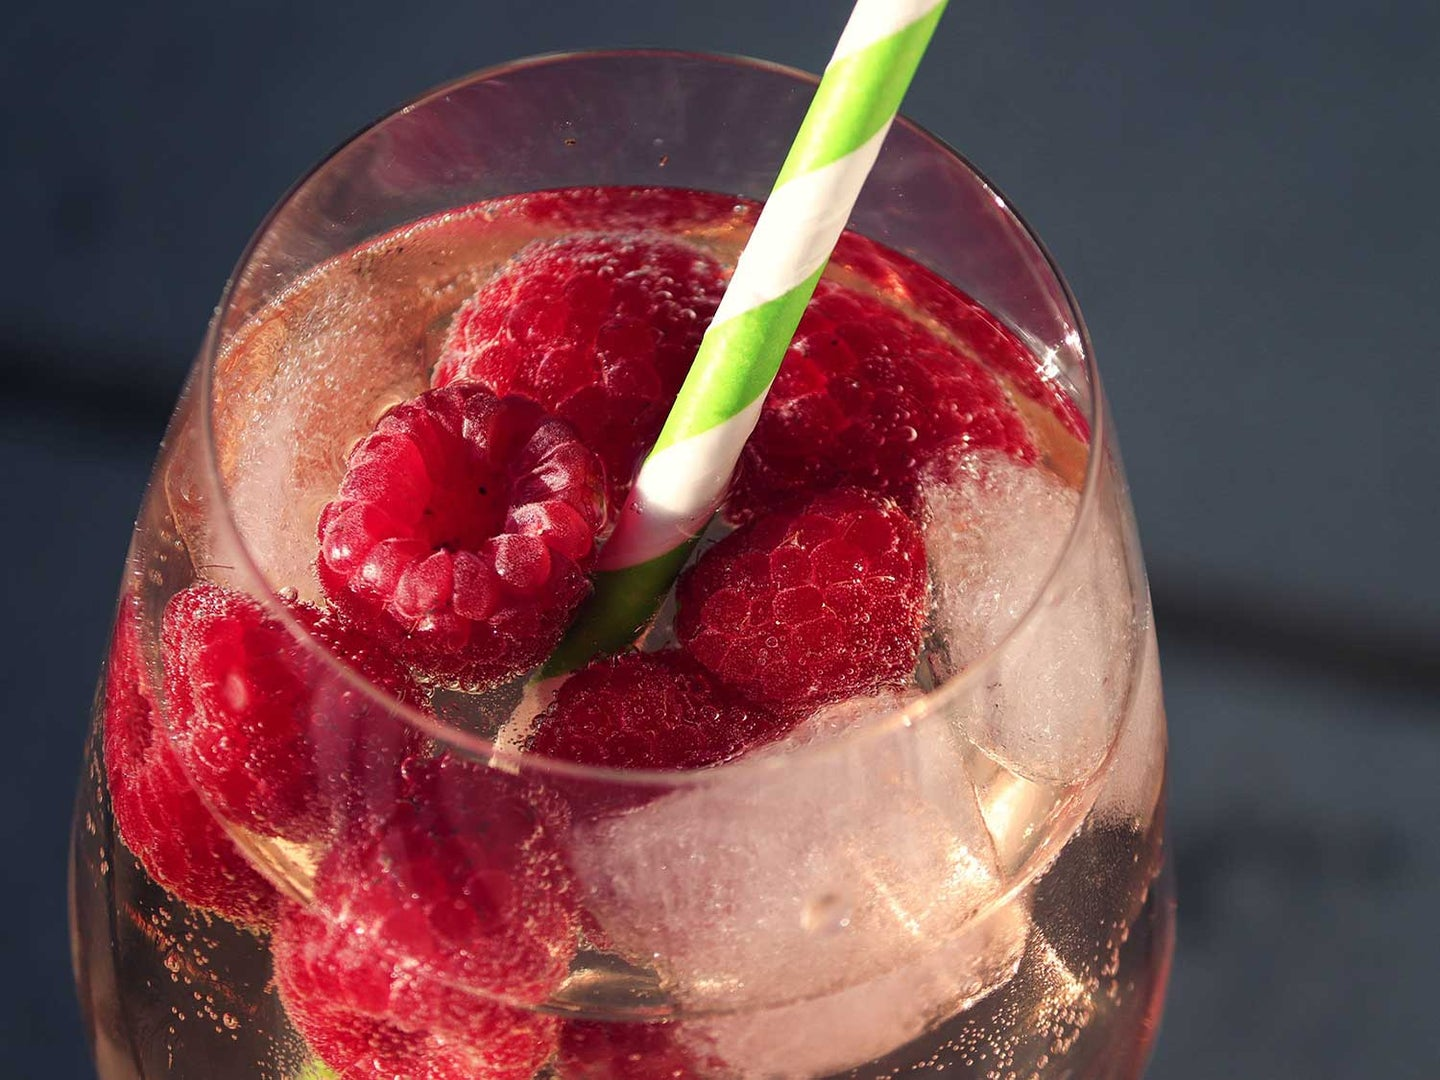 Raspberries in drink with straw.